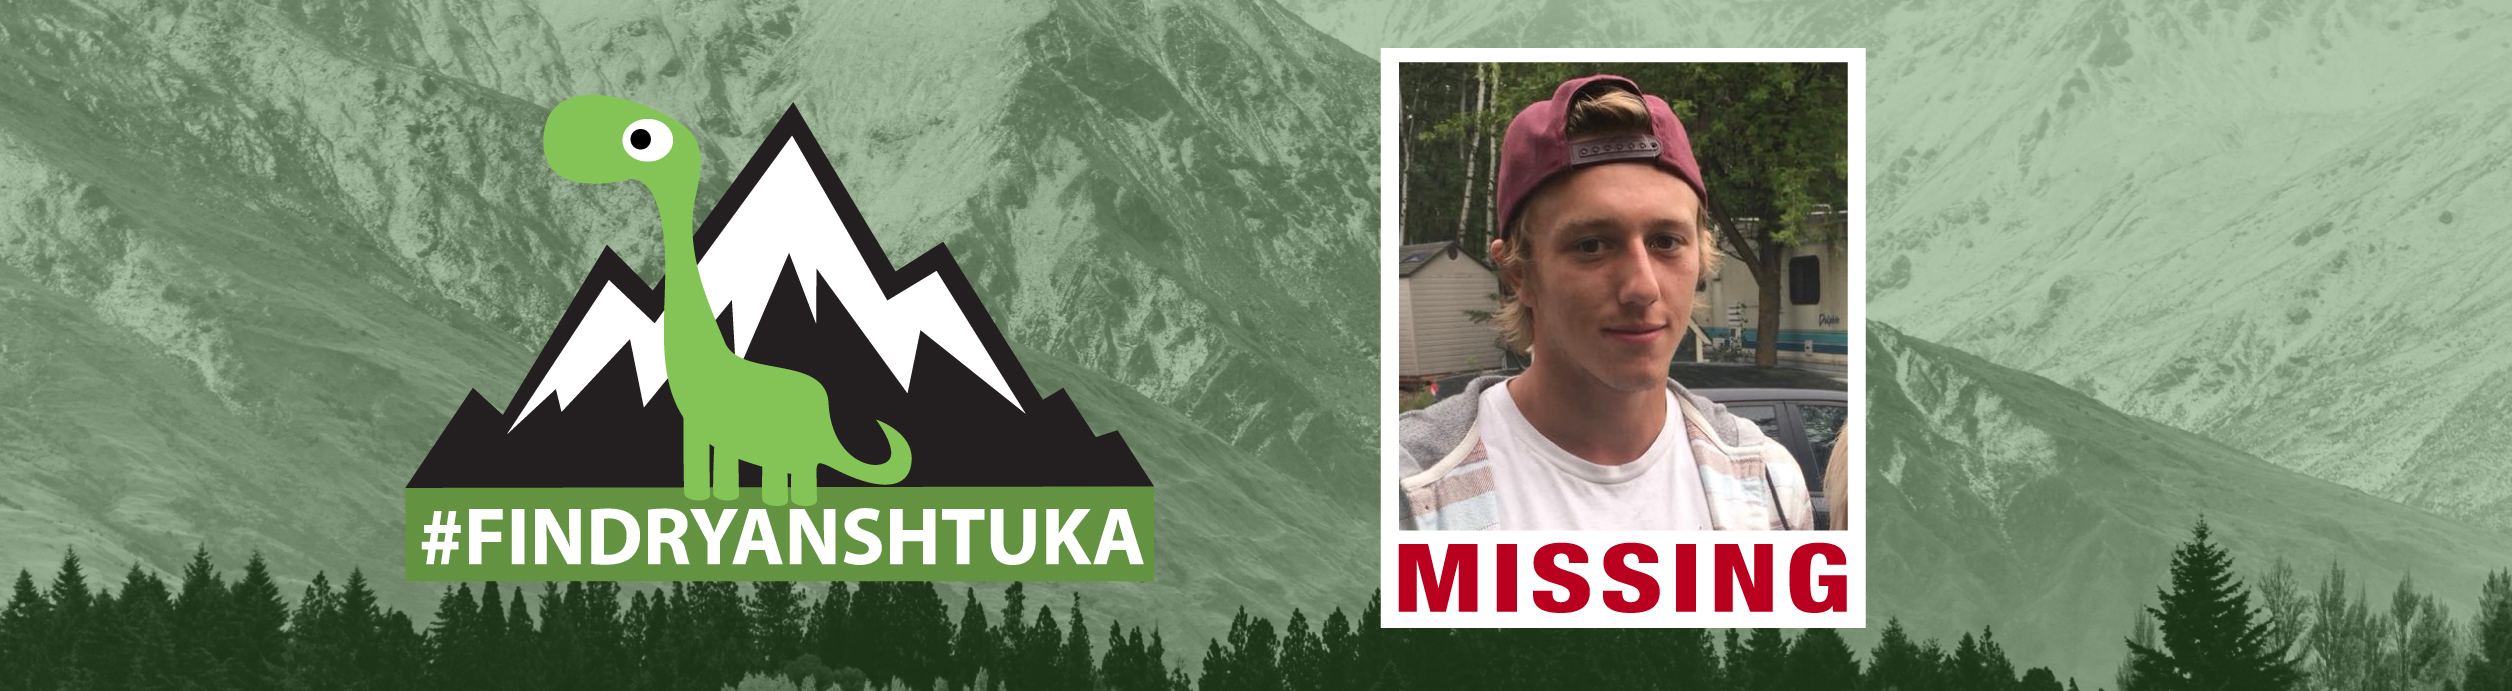 MISSING: RYAN SHTUKA